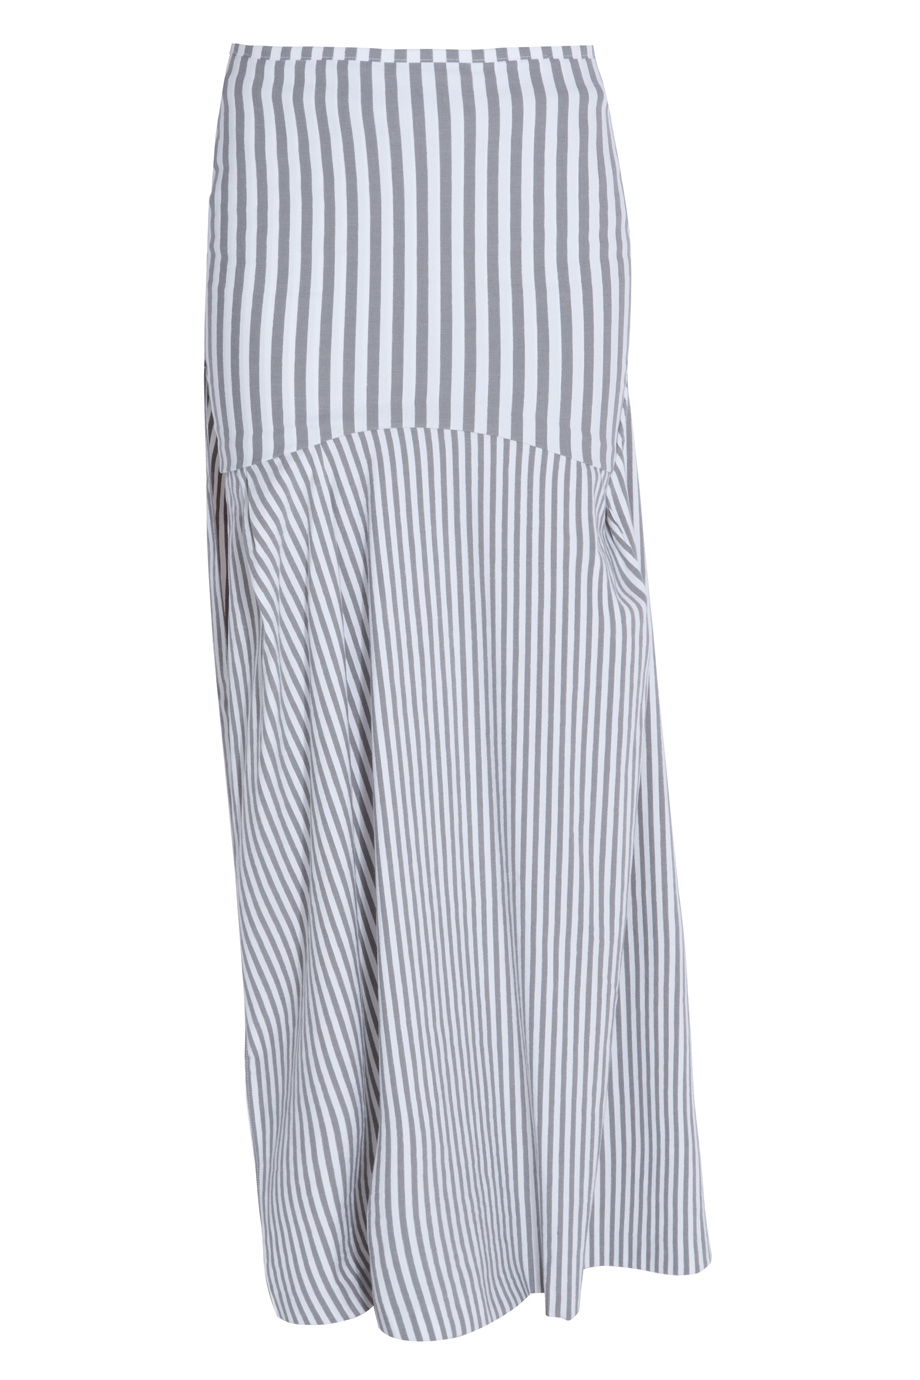 acne studios stripe cotton maxi skirt in white lyst